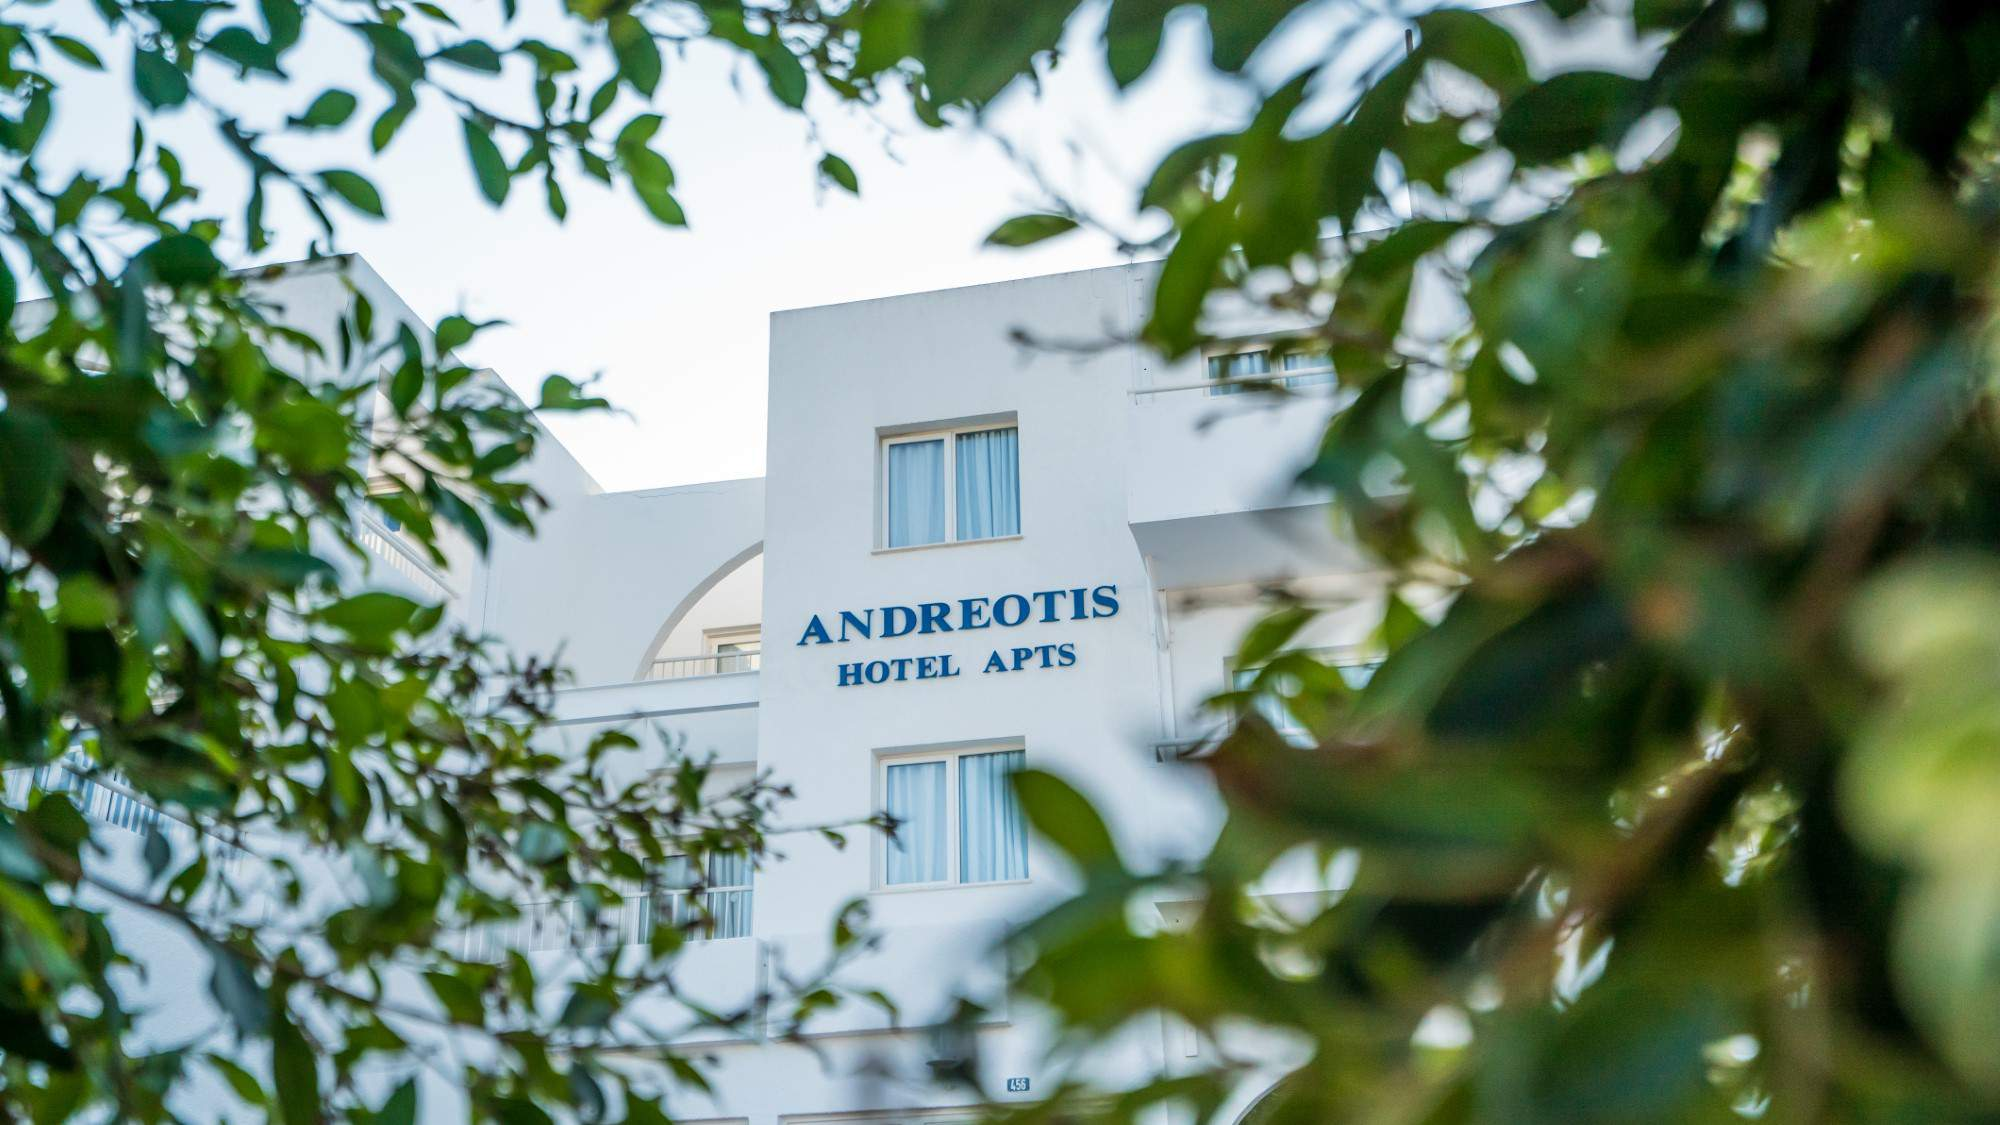 Front, exterior area of andreotis hotel apartments